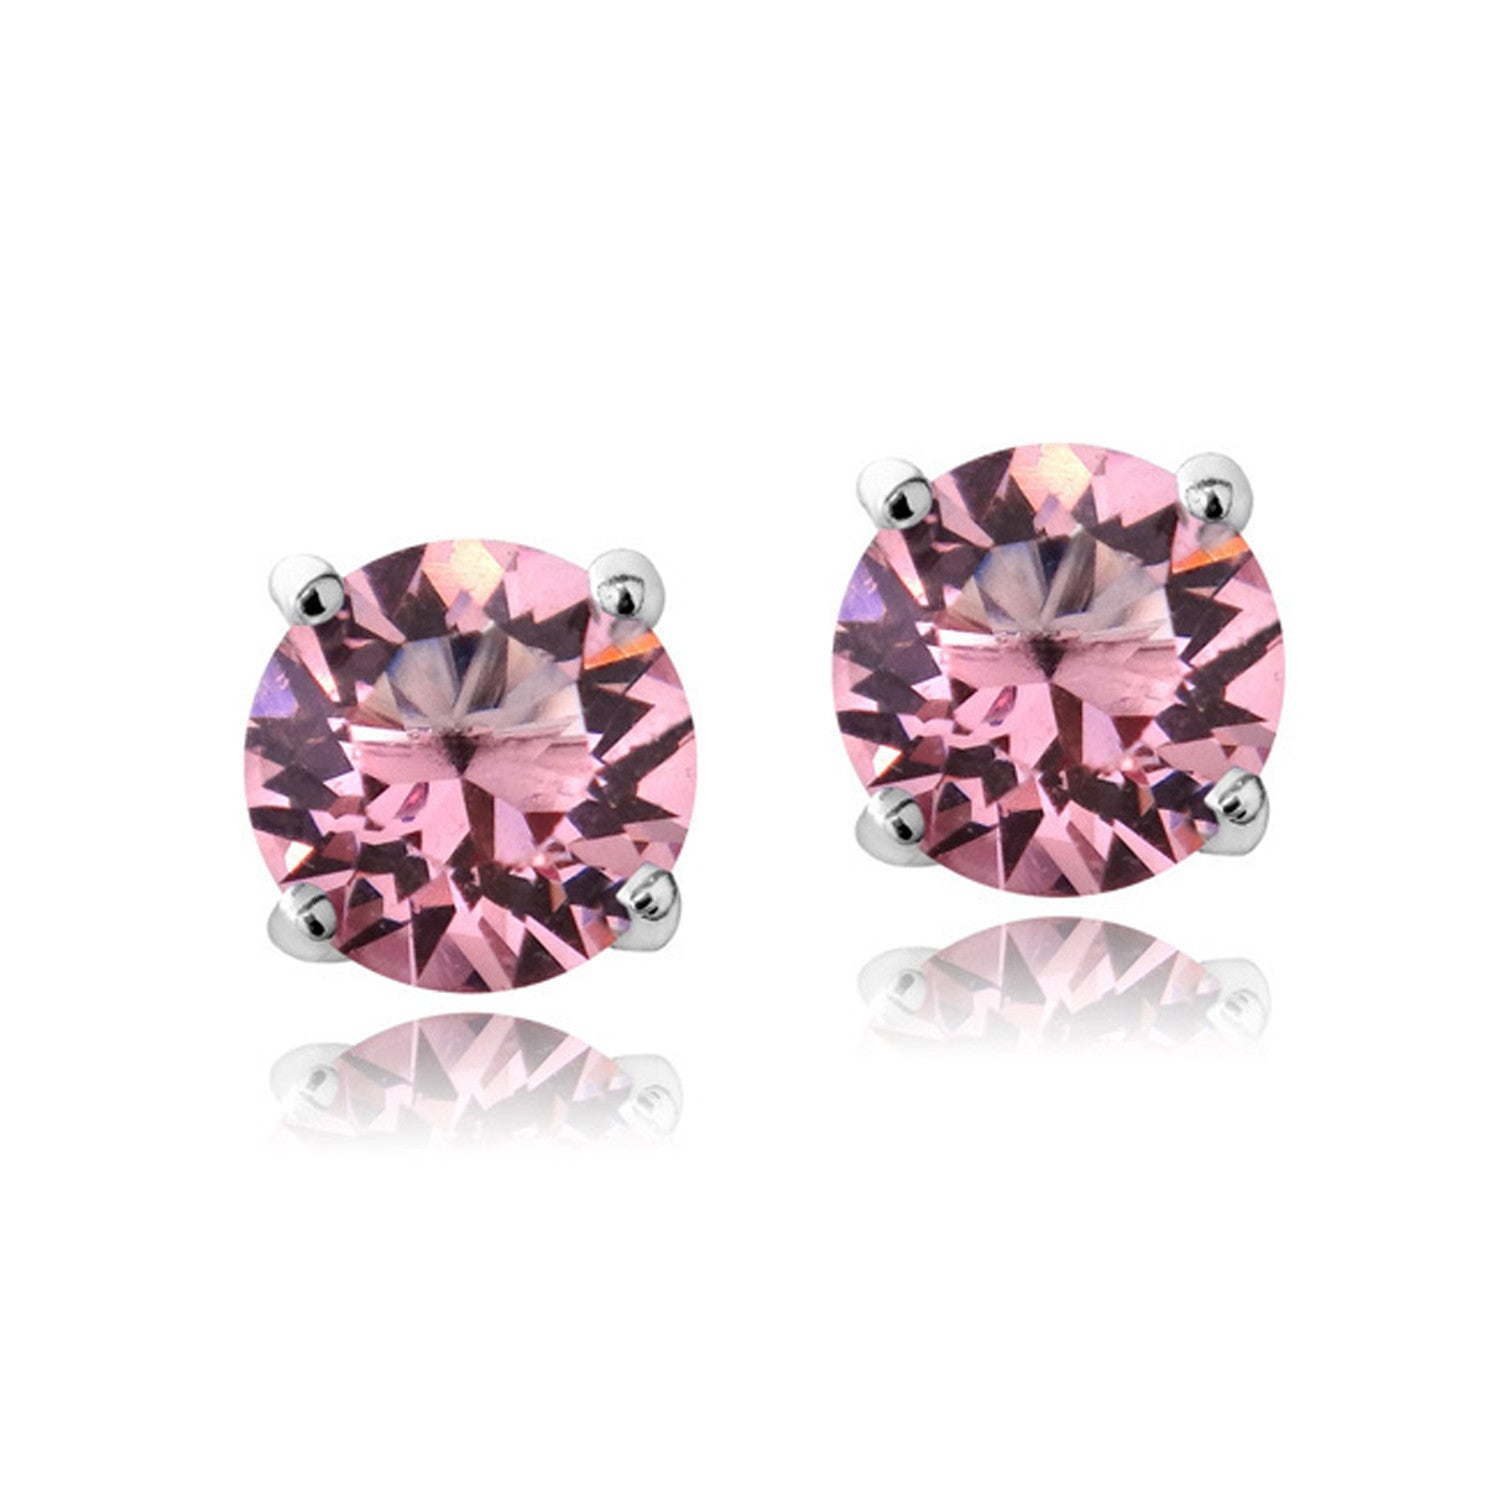 Swarovski Elements Sterling Silver Butterfly Clasp Birthstone Stud Earrings - October Light Rose